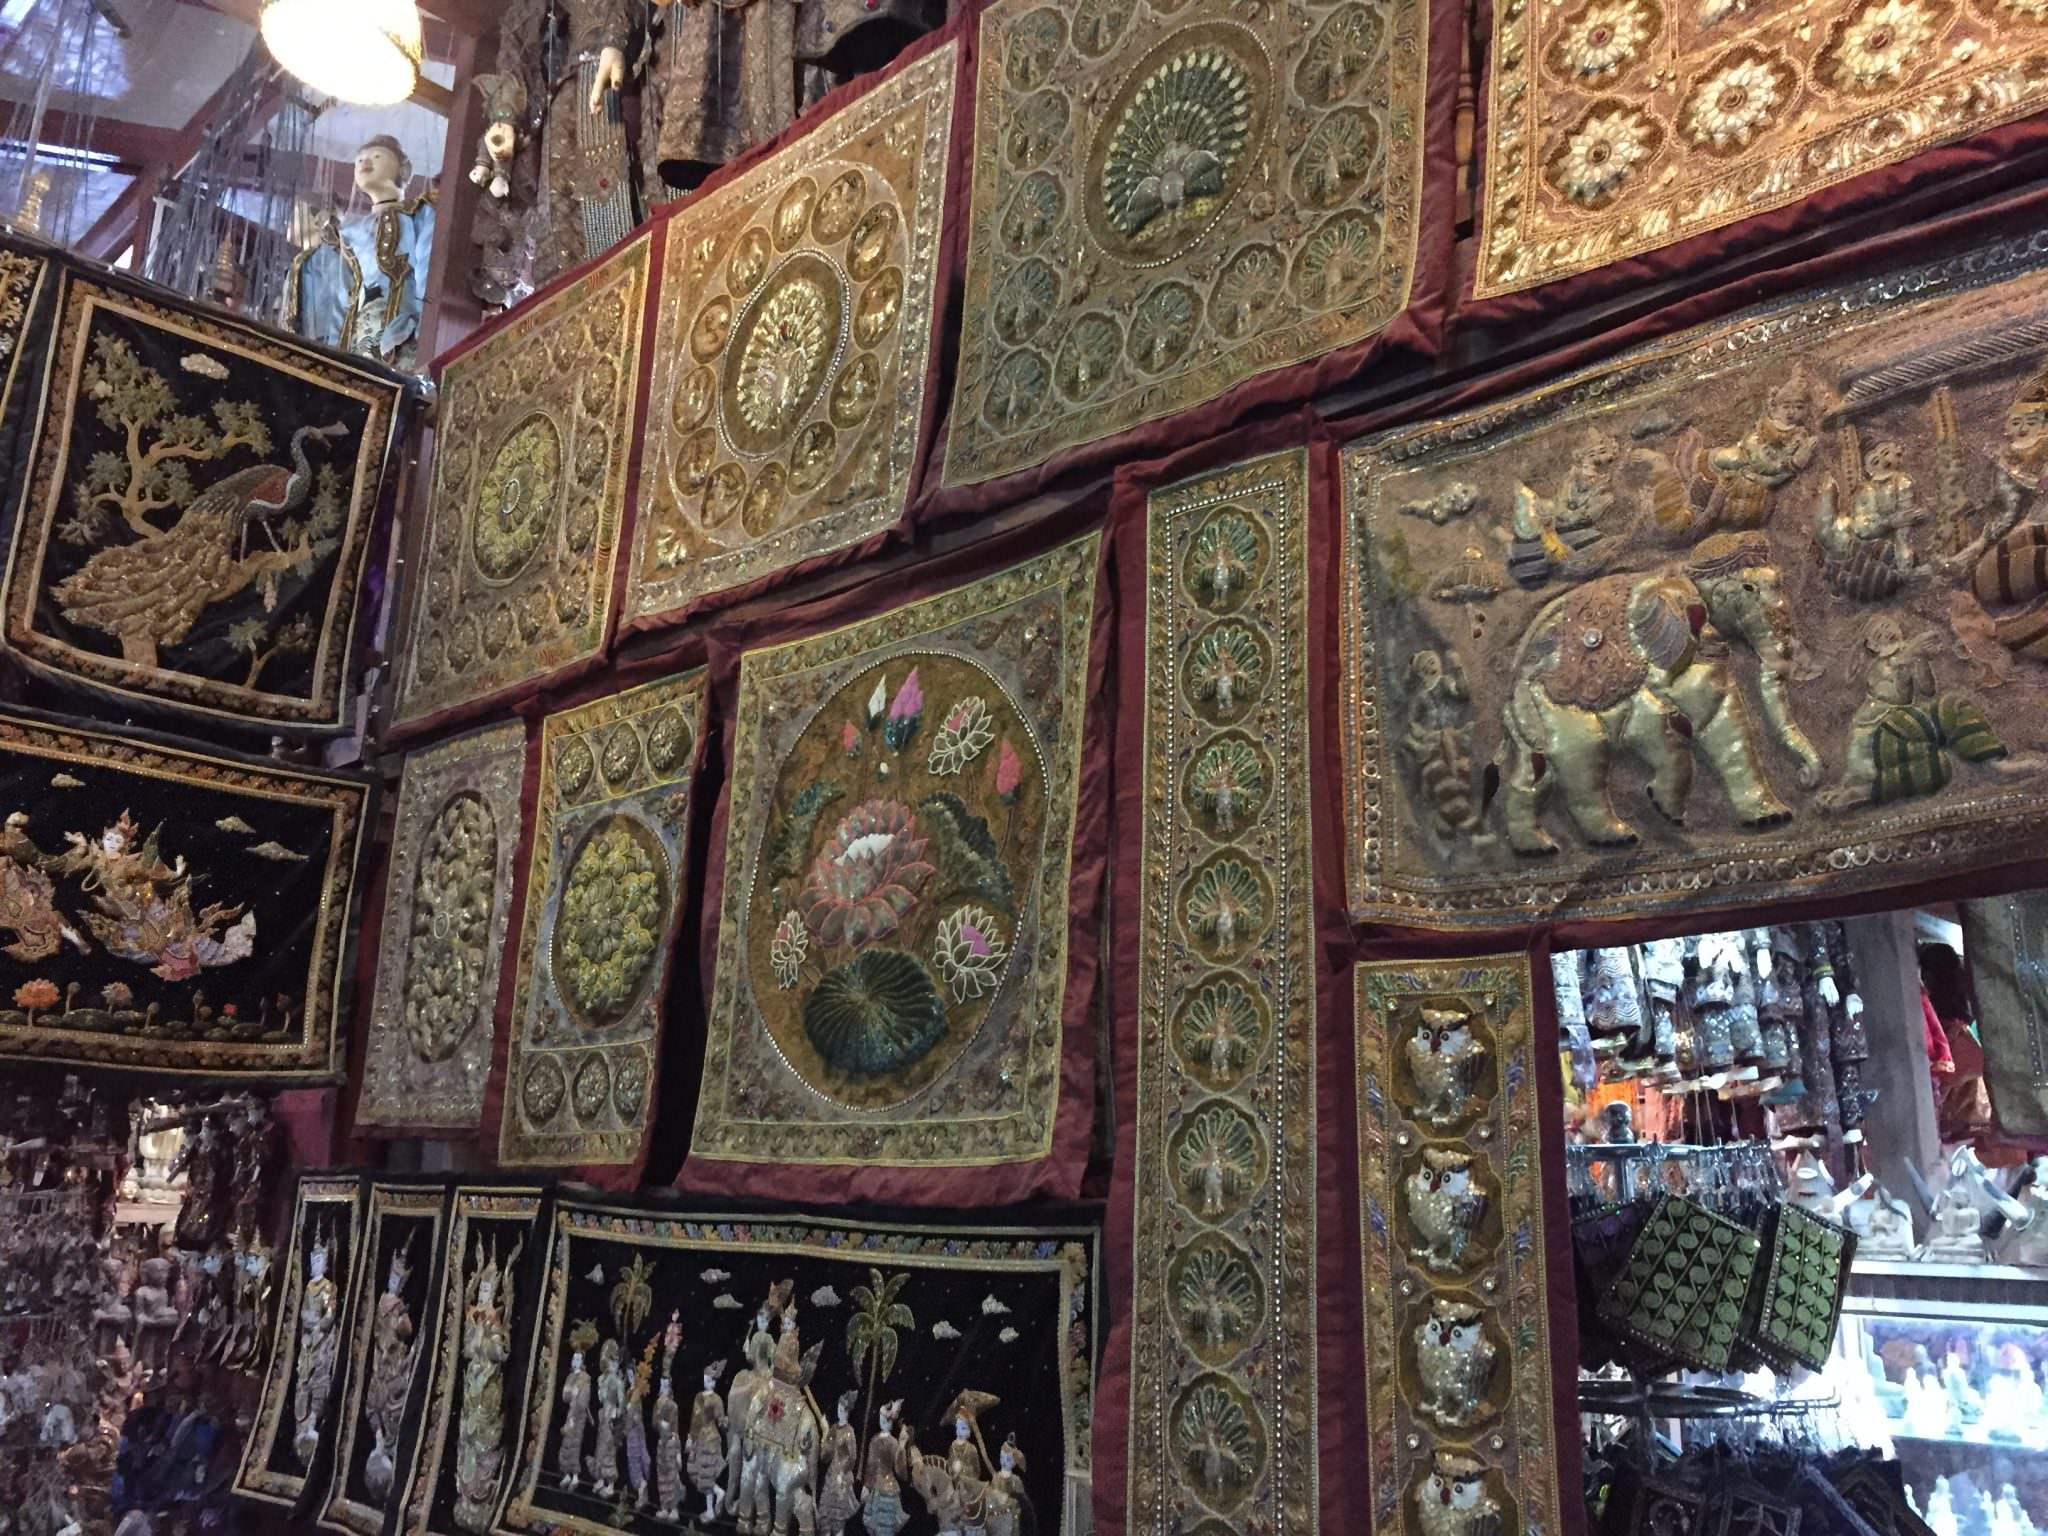 Kalagas galore! Traditionally, they hang on the wall of Burmese family homes, often as headboards for a bed. © 2015 Gail Jessen